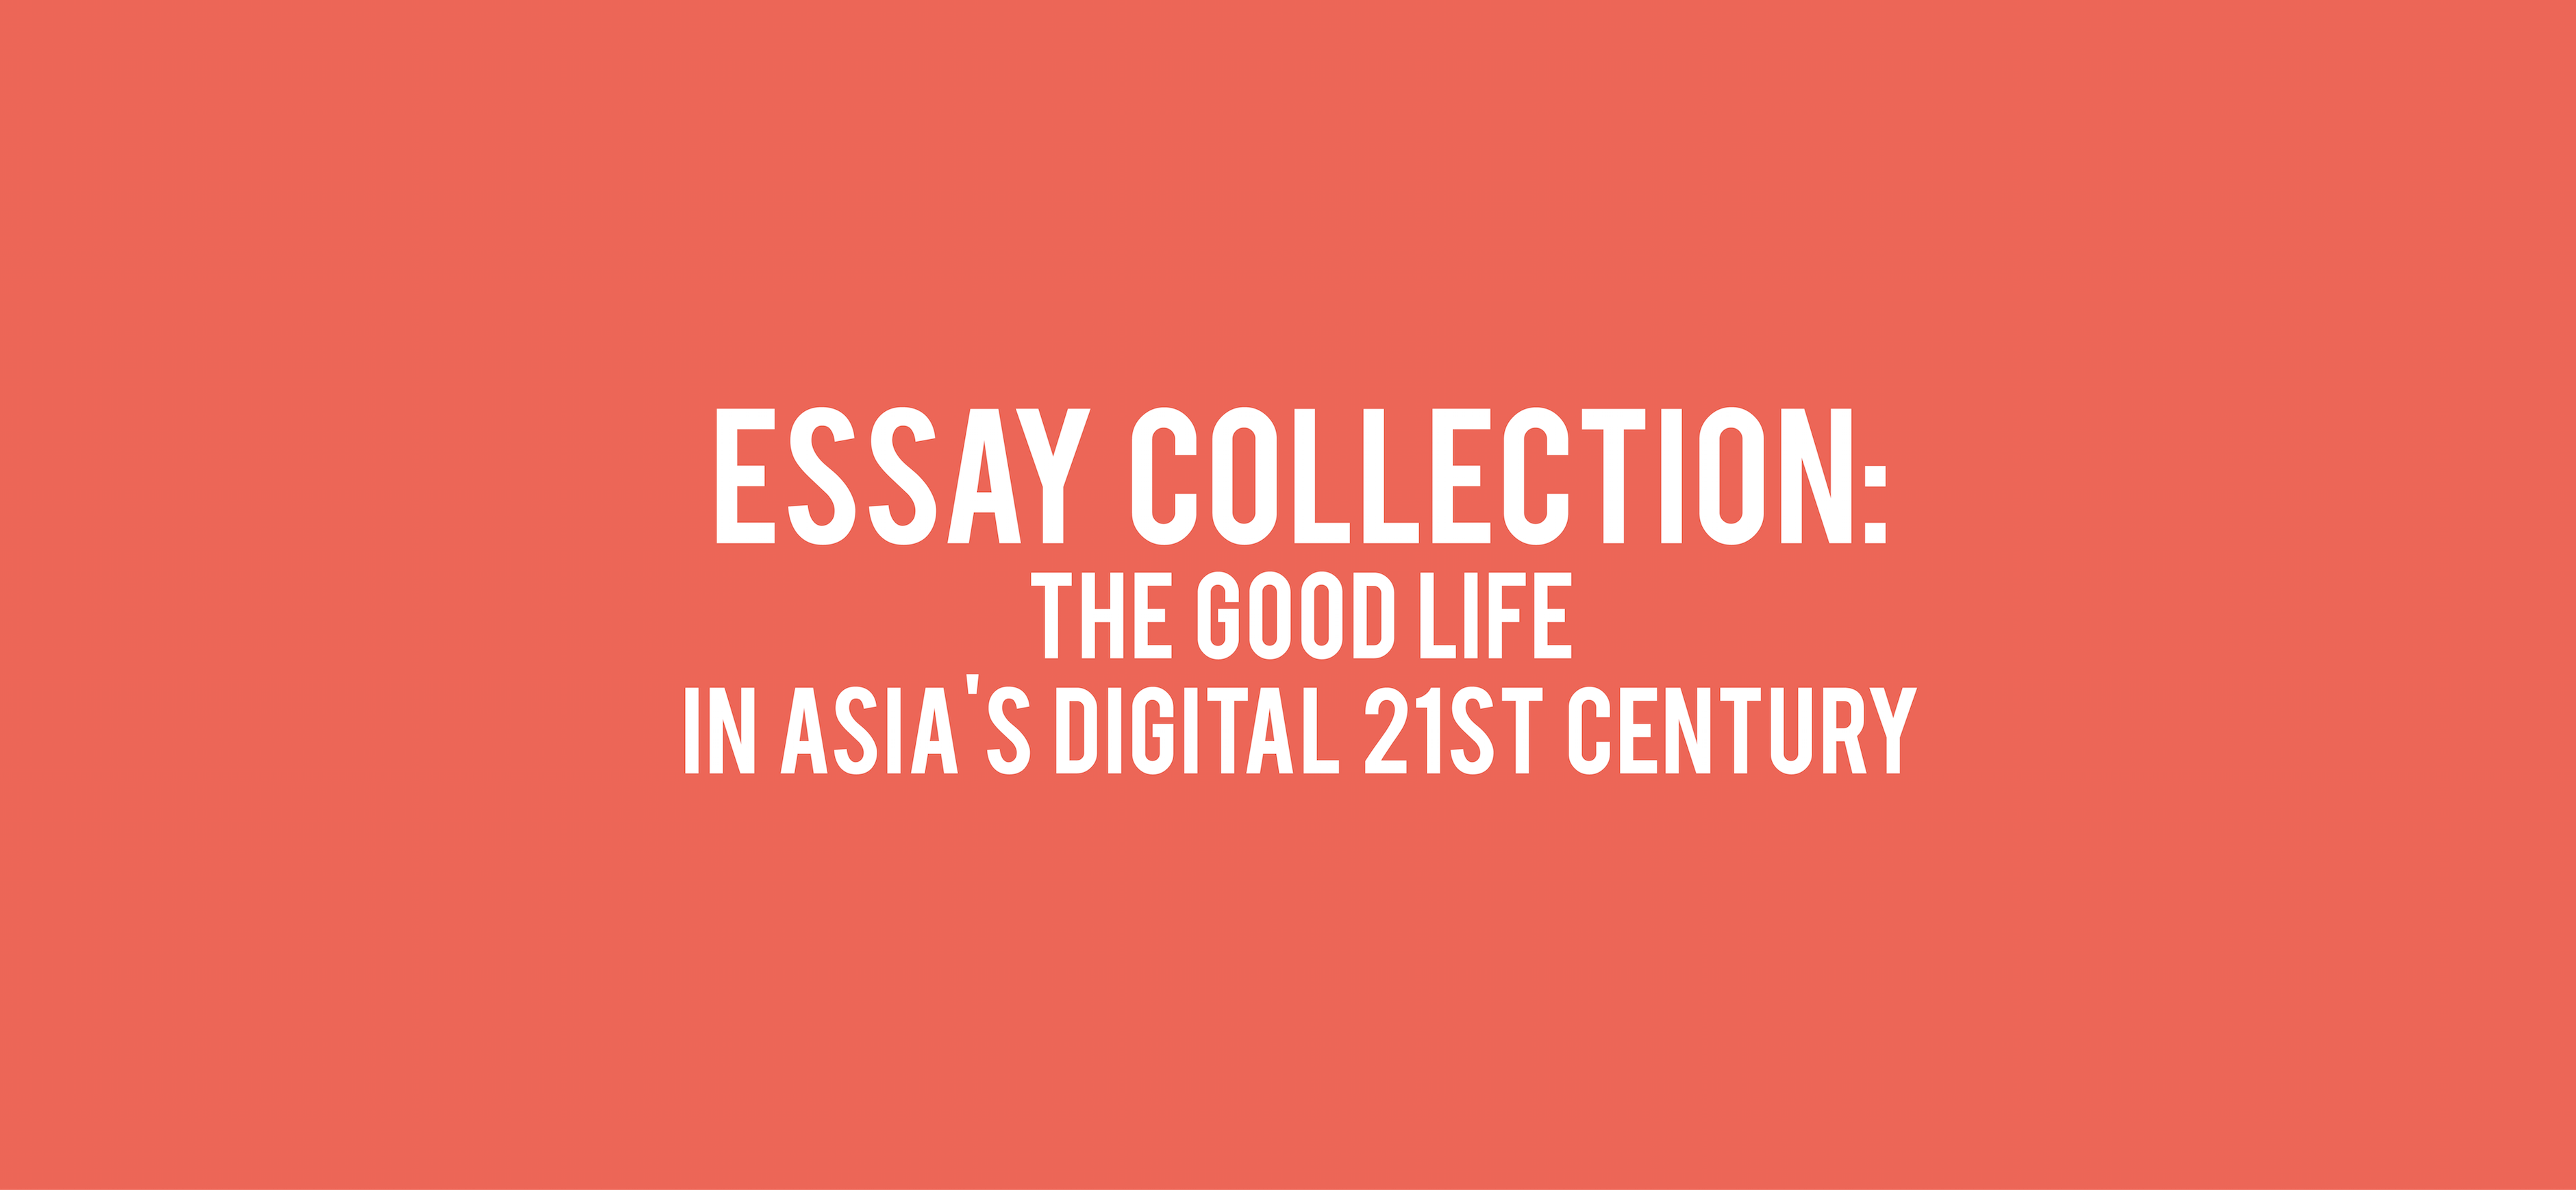 new essay collection digital asia hub new essay collection